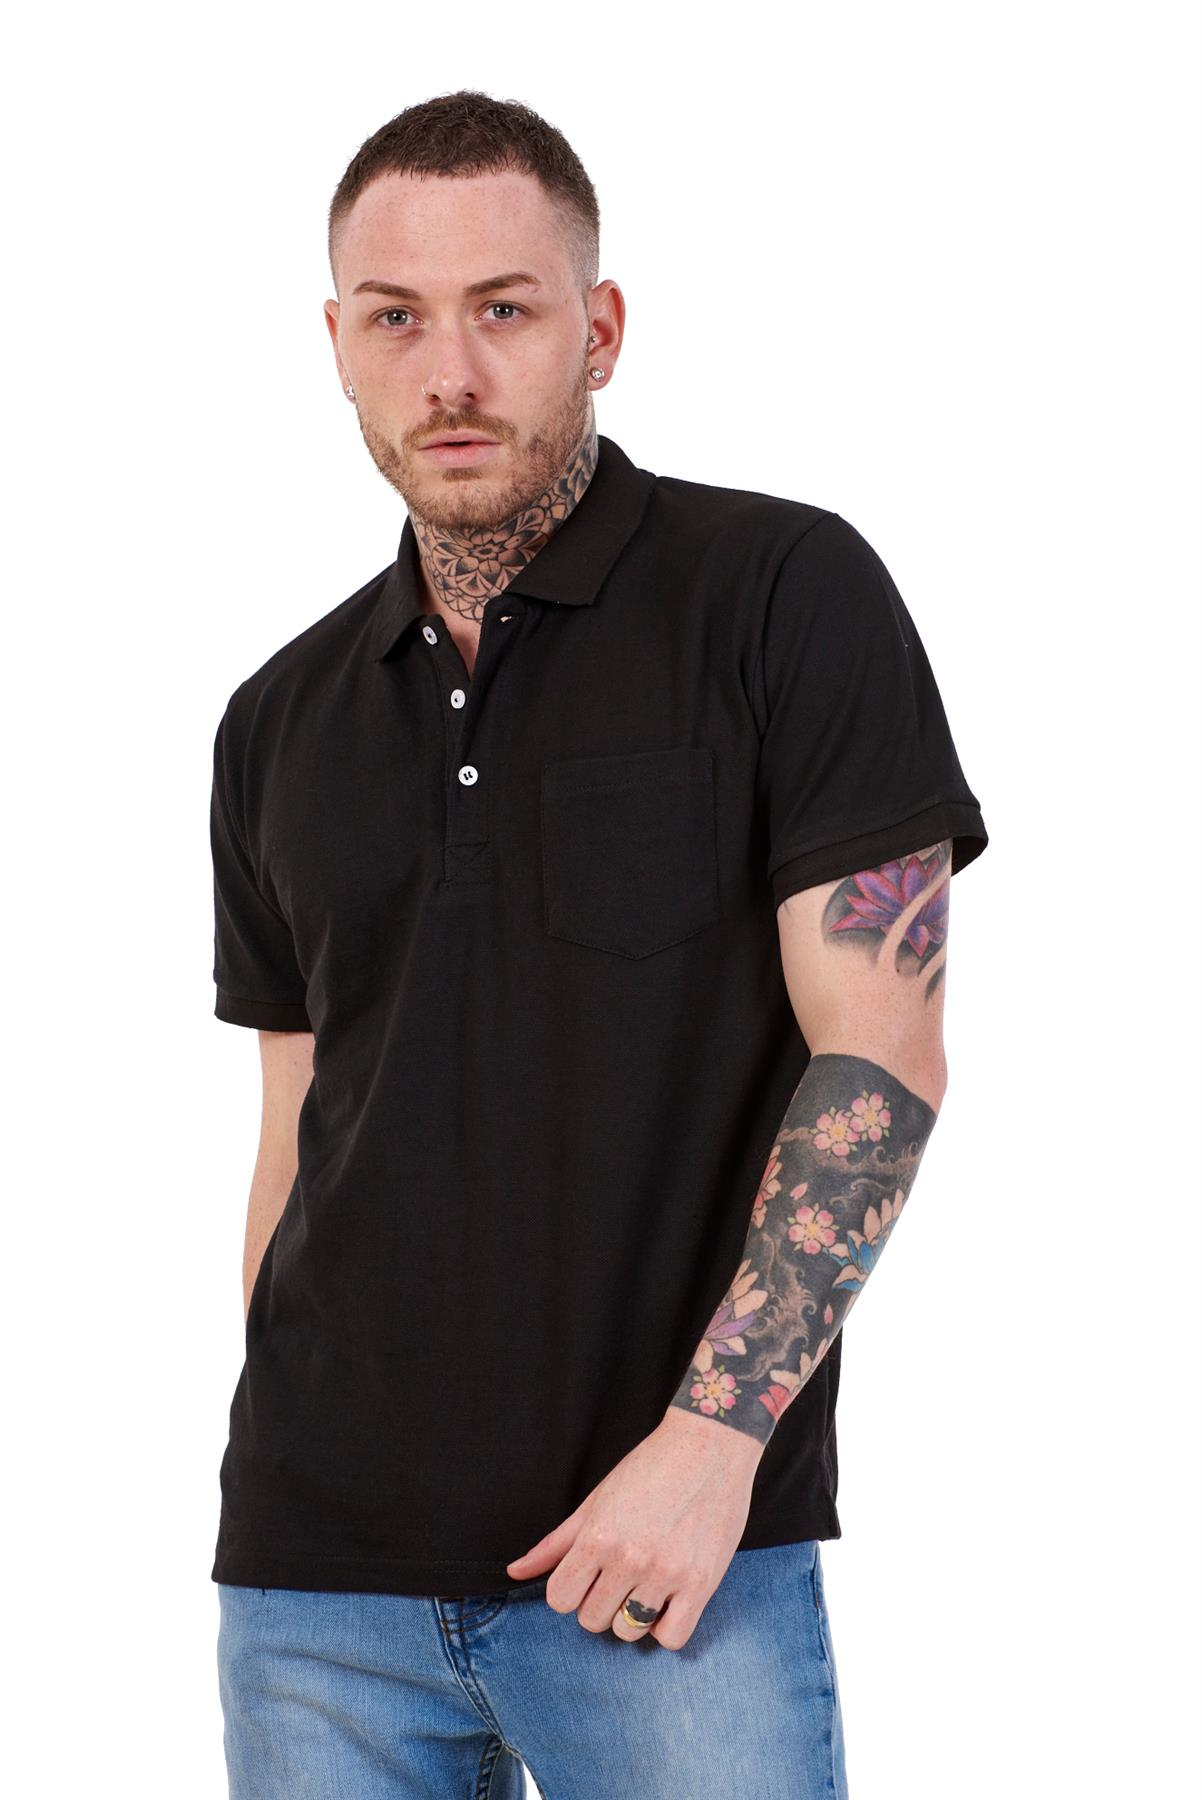 Mens-Cotton-T-Shirts-Regular-fit-Plain-Polo-Pocket-Casual-Formal-Shirt-Top-M-XXL thumbnail 3